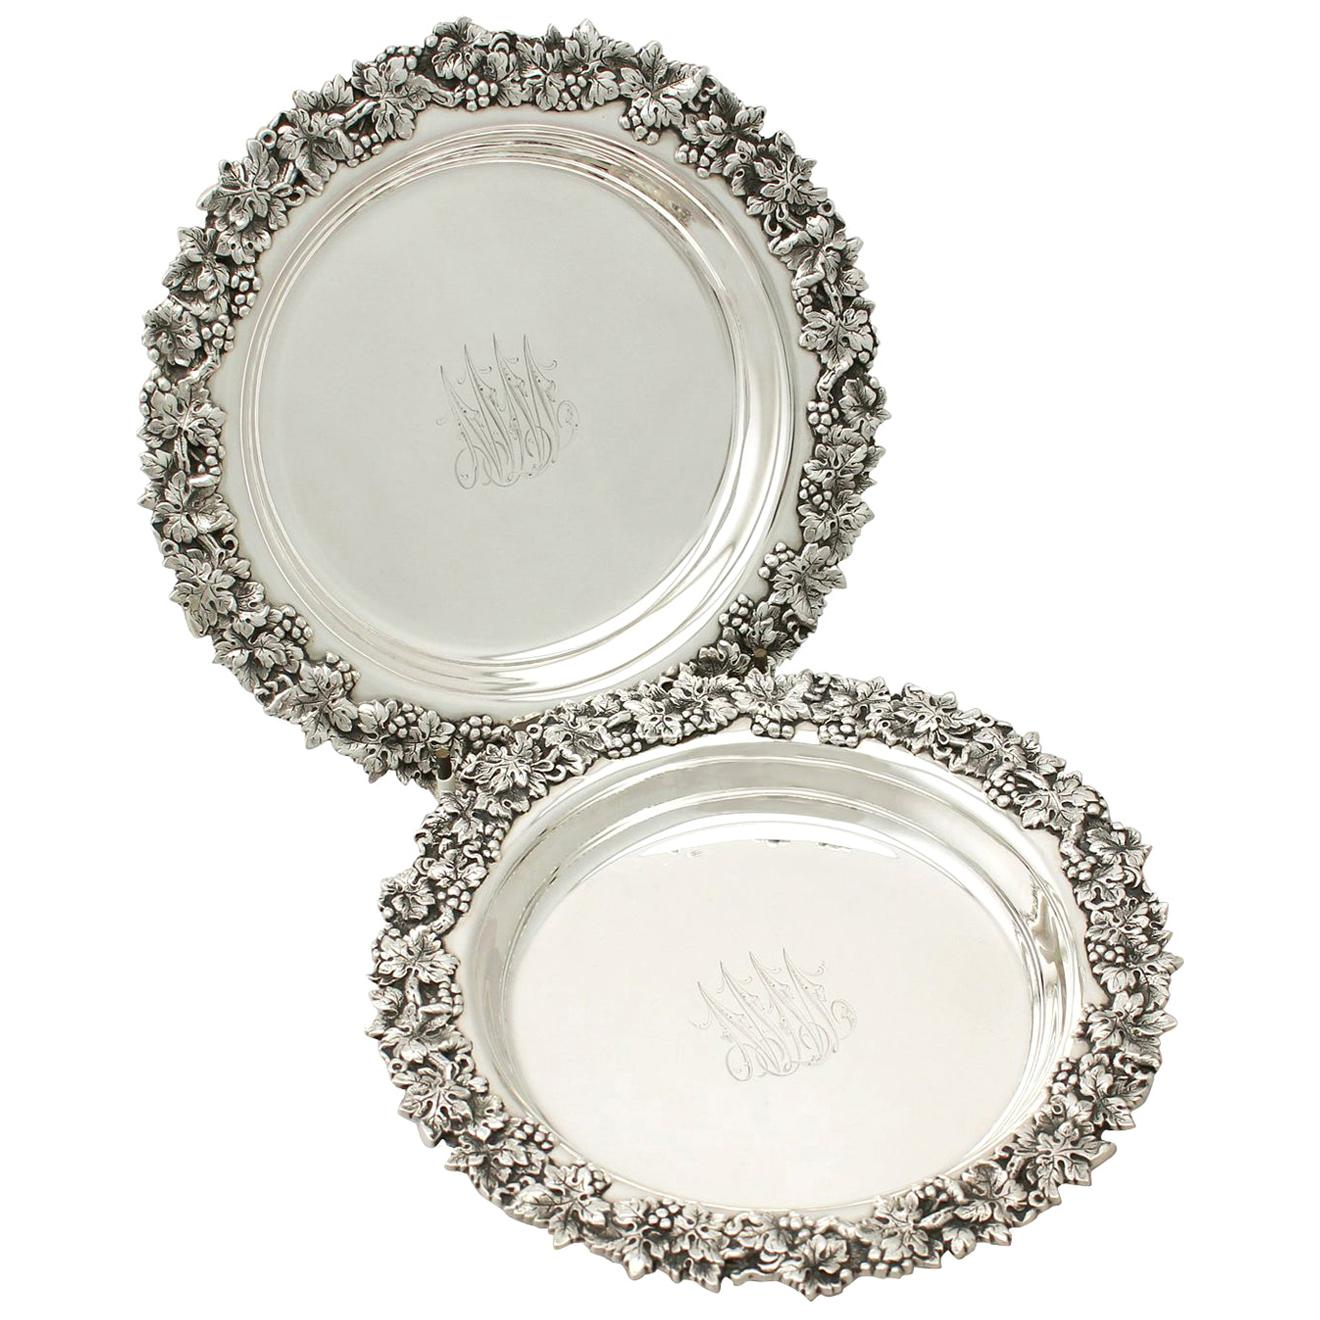 20th Century Antique American Sterling Silver Coasters, Circa 1900